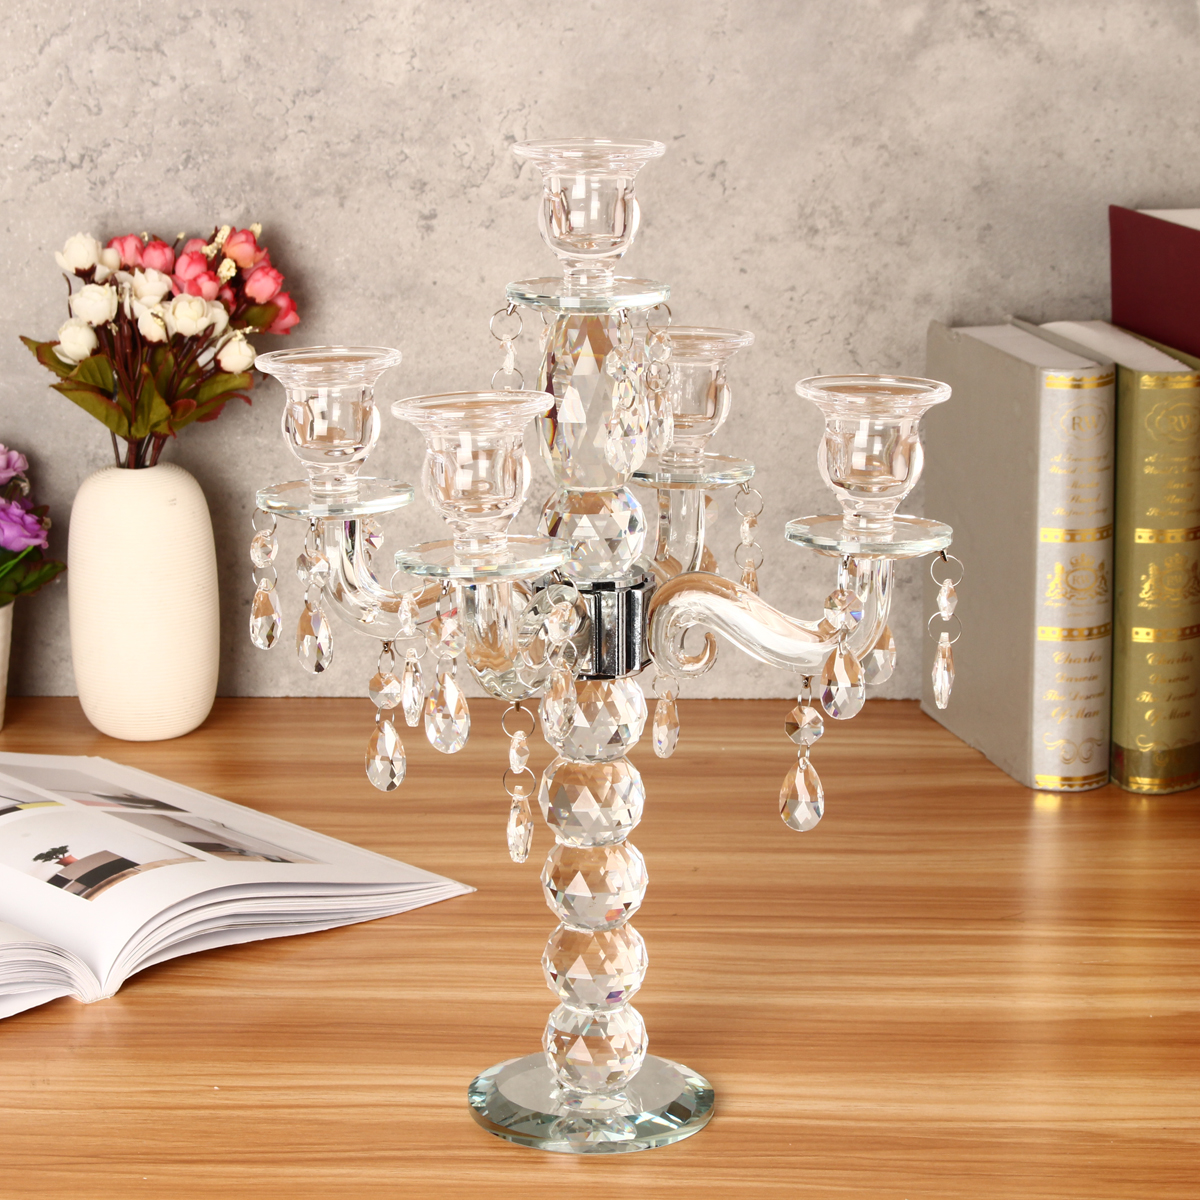 5 Arm Crystal Candelabra Pillar Candle Holder Centerpiece Candlestick Lights US by